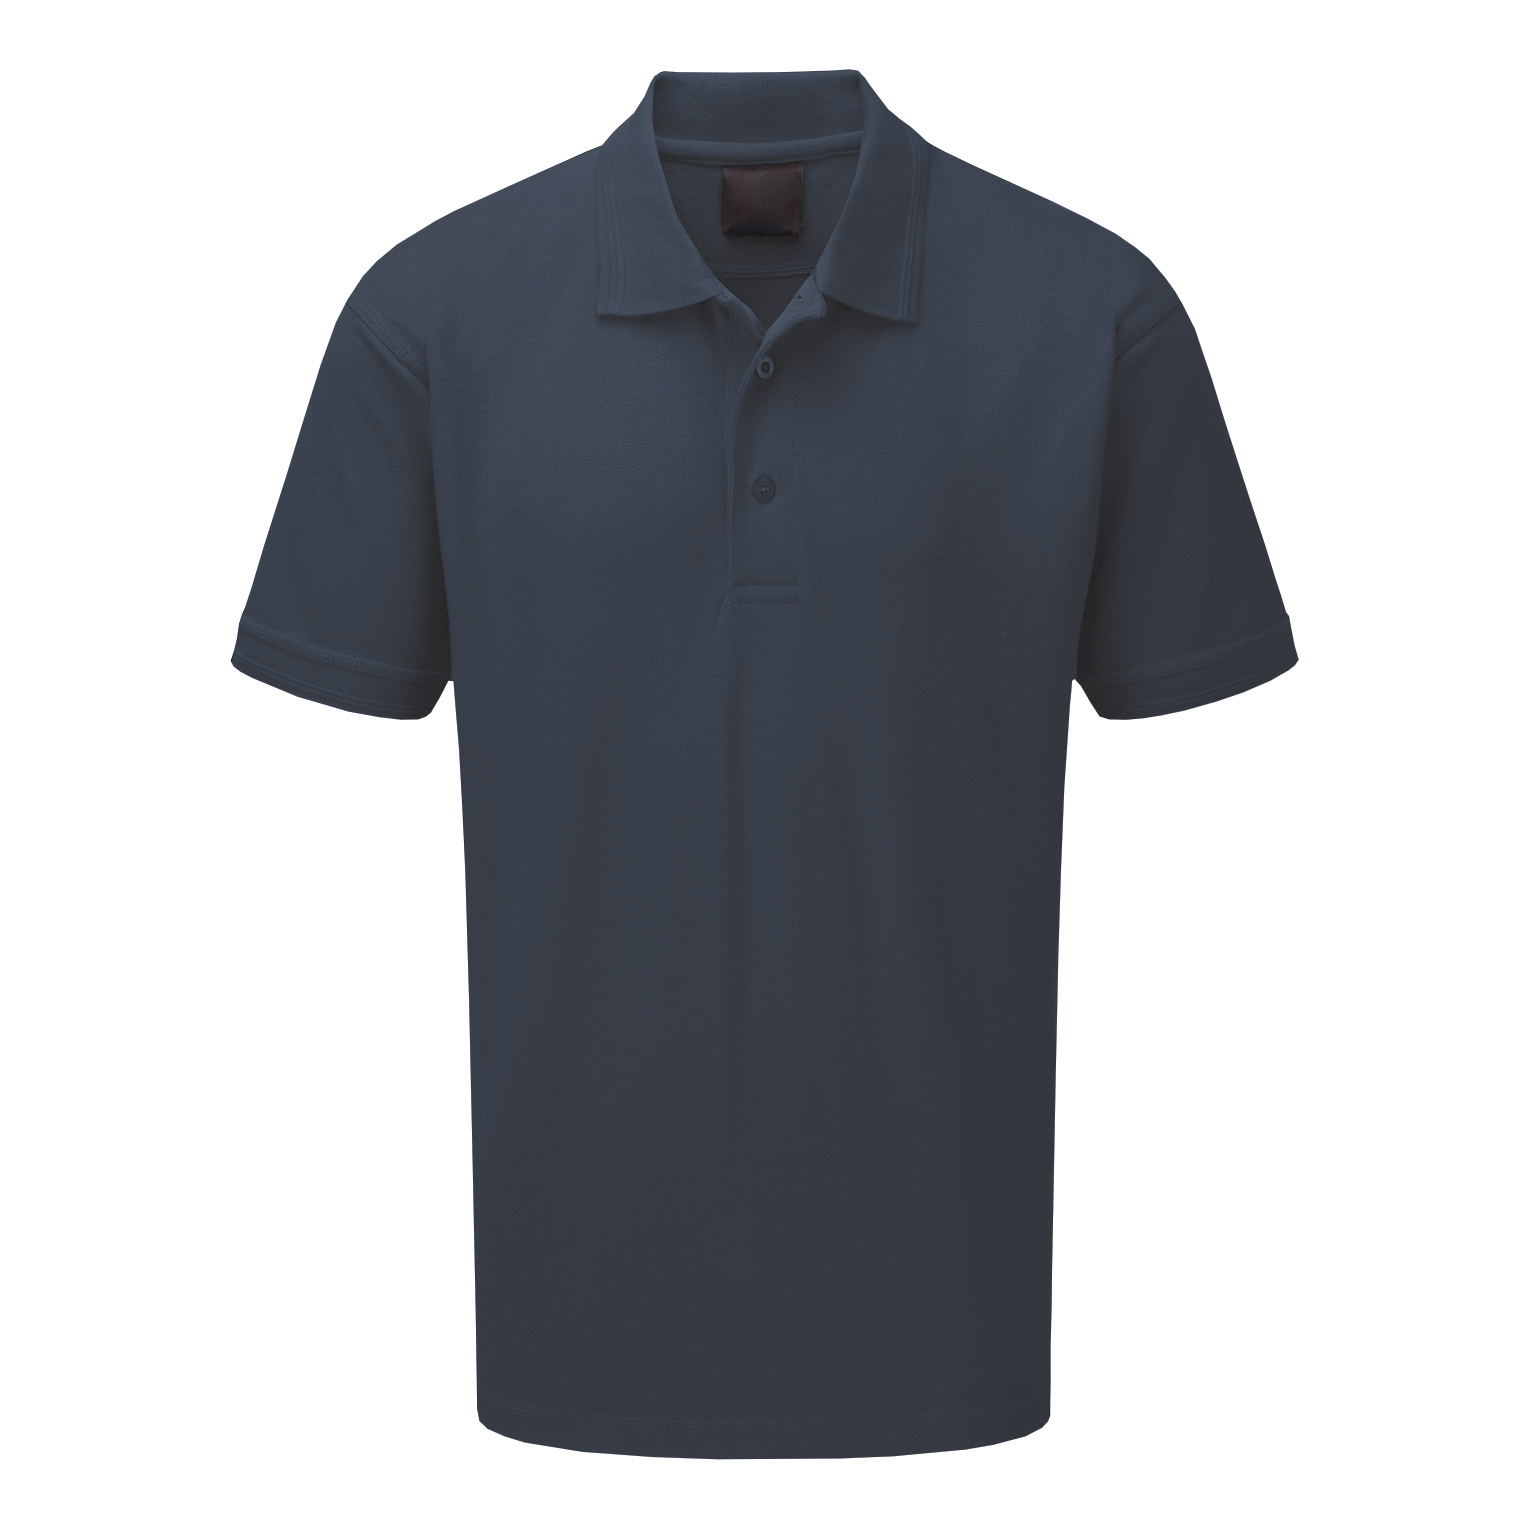 Business Polo Premium Triple Stitched Size 3XL Graphite